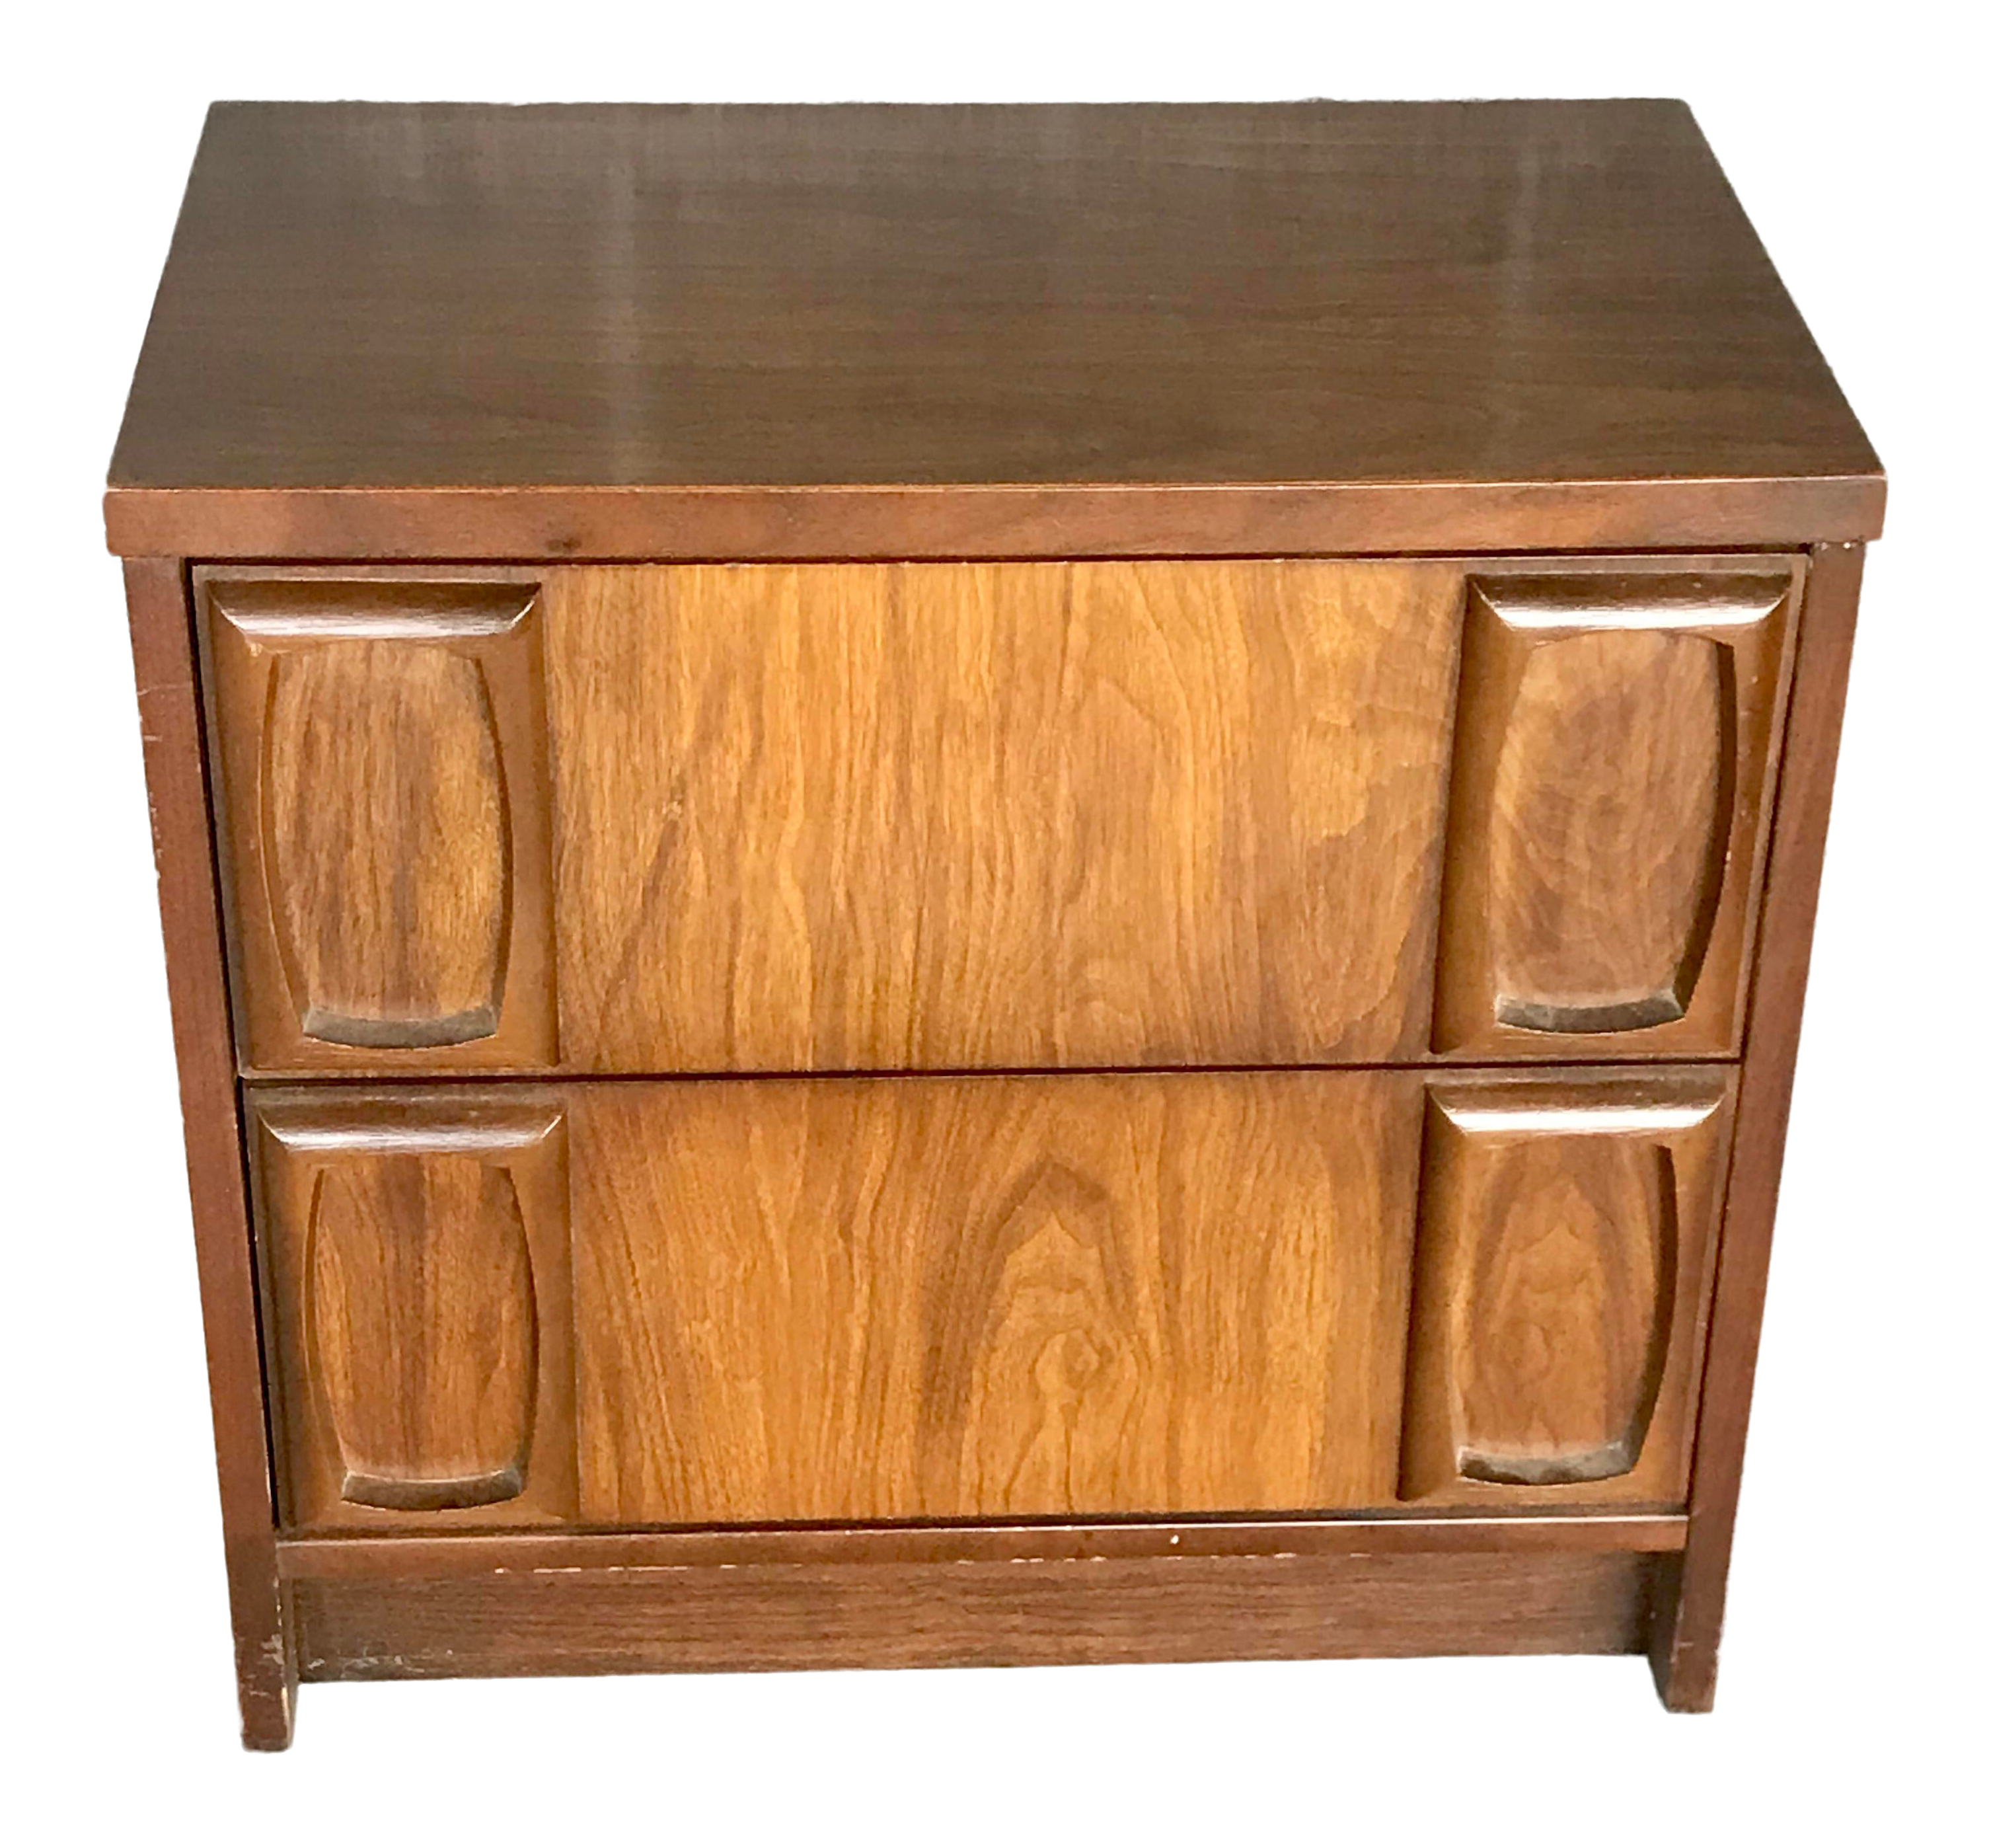 1960s Mid Century Modern Lenoir House For Broyhill Furniture Nightstand